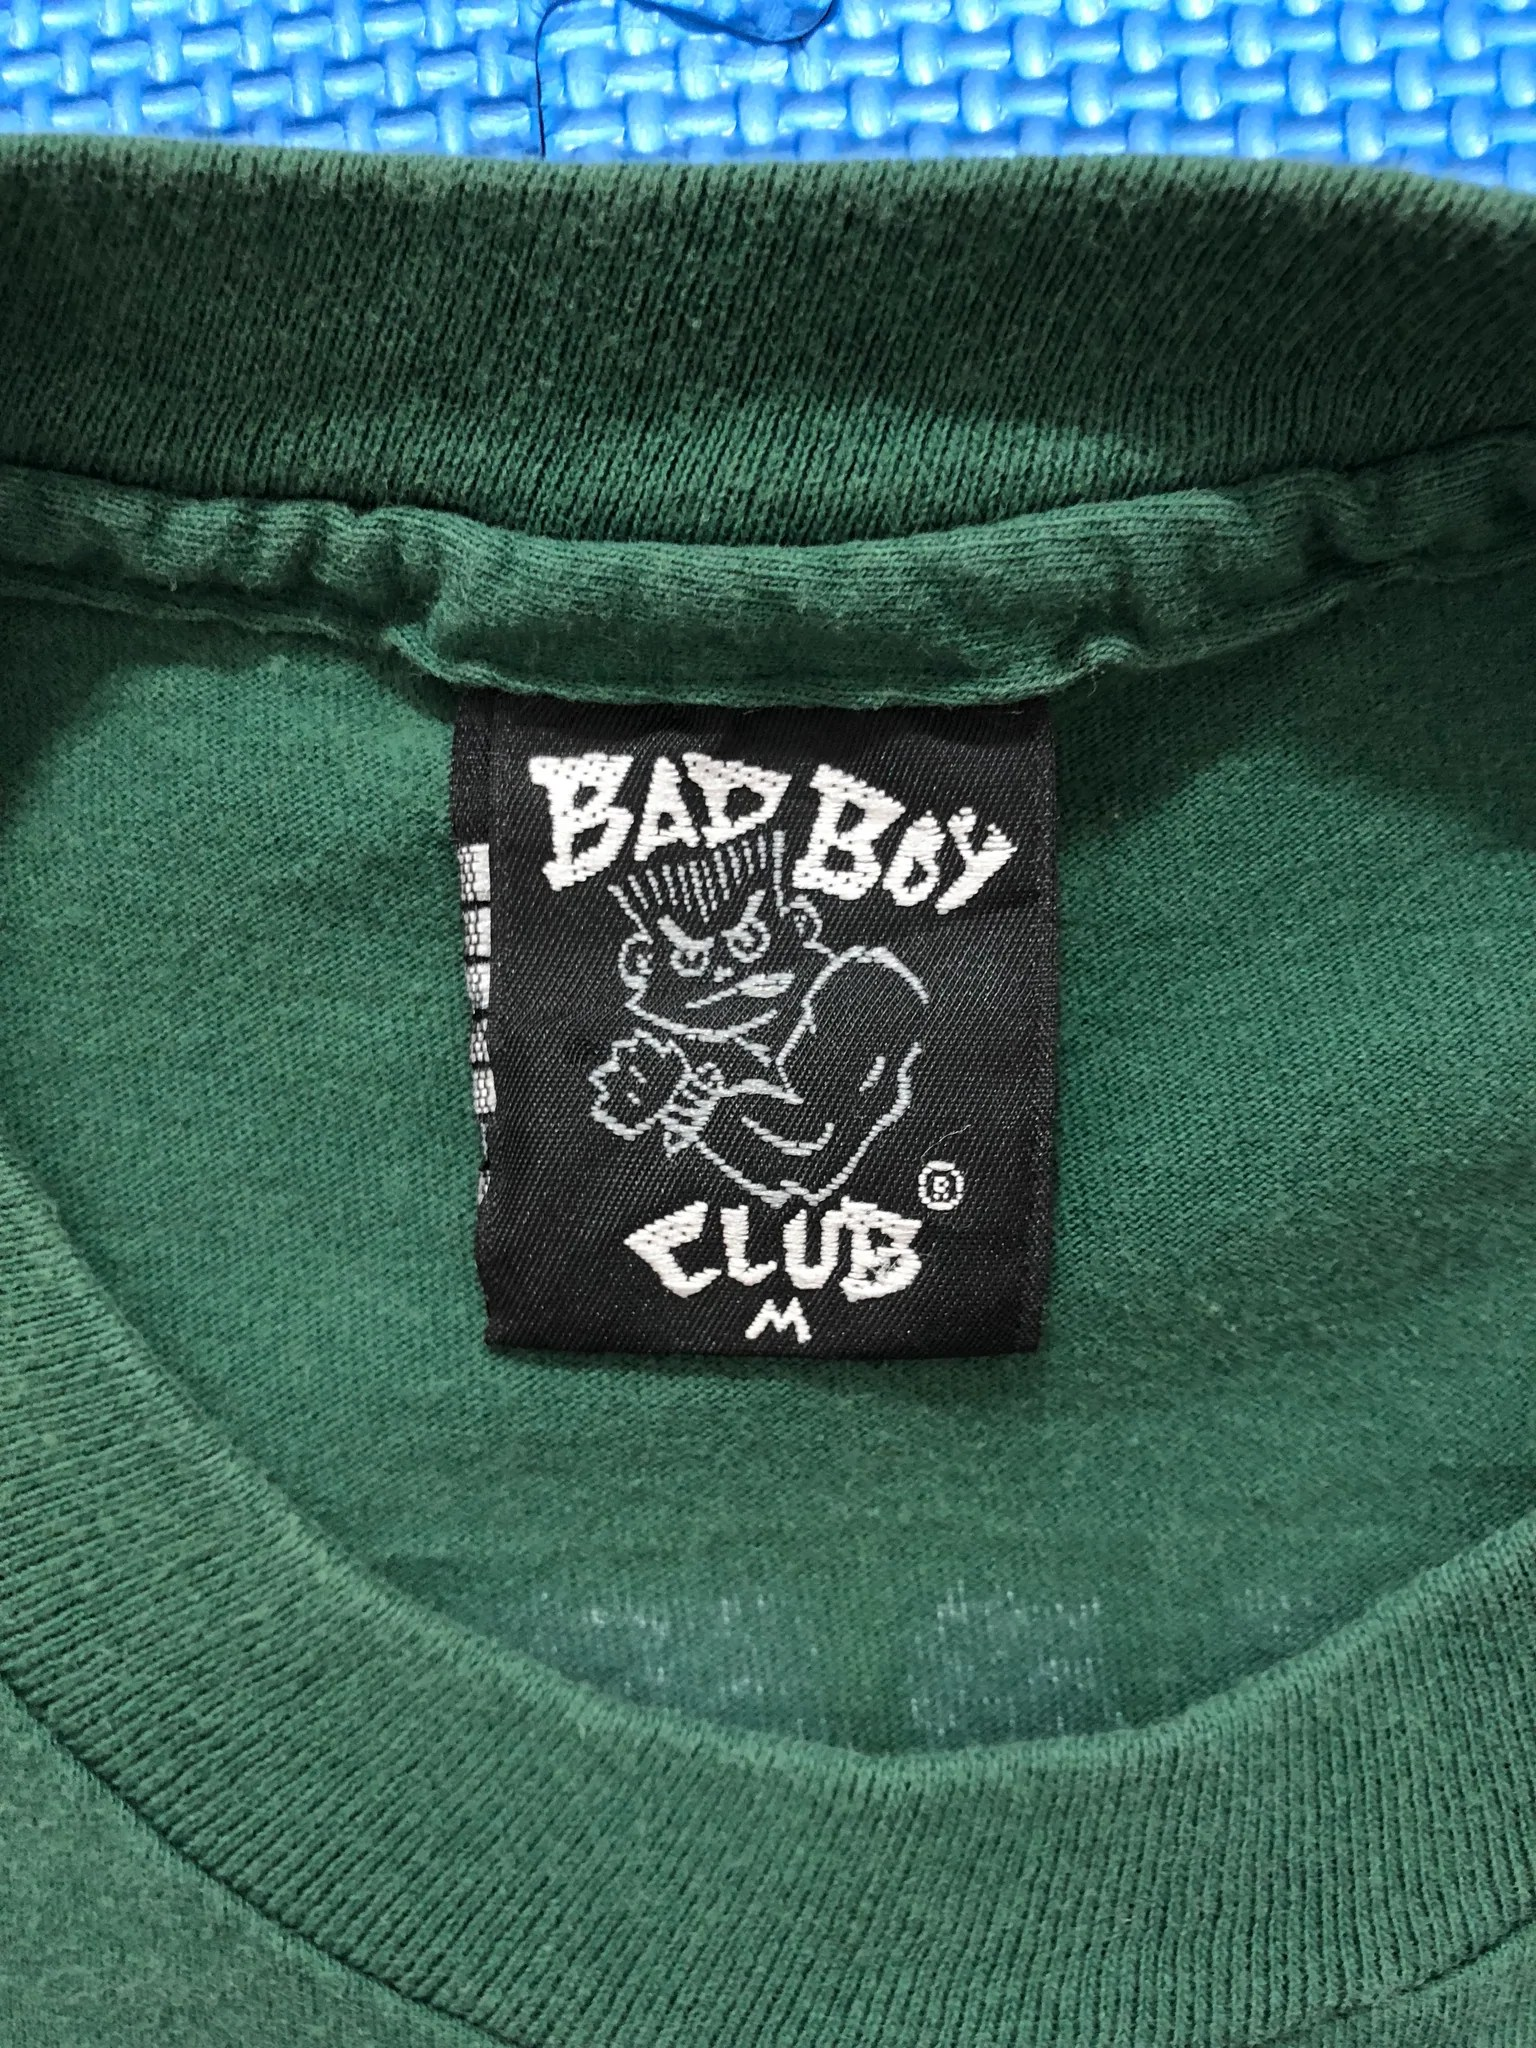 Vintage Bad Vintage Bad Boy Club T Shirt The Archive